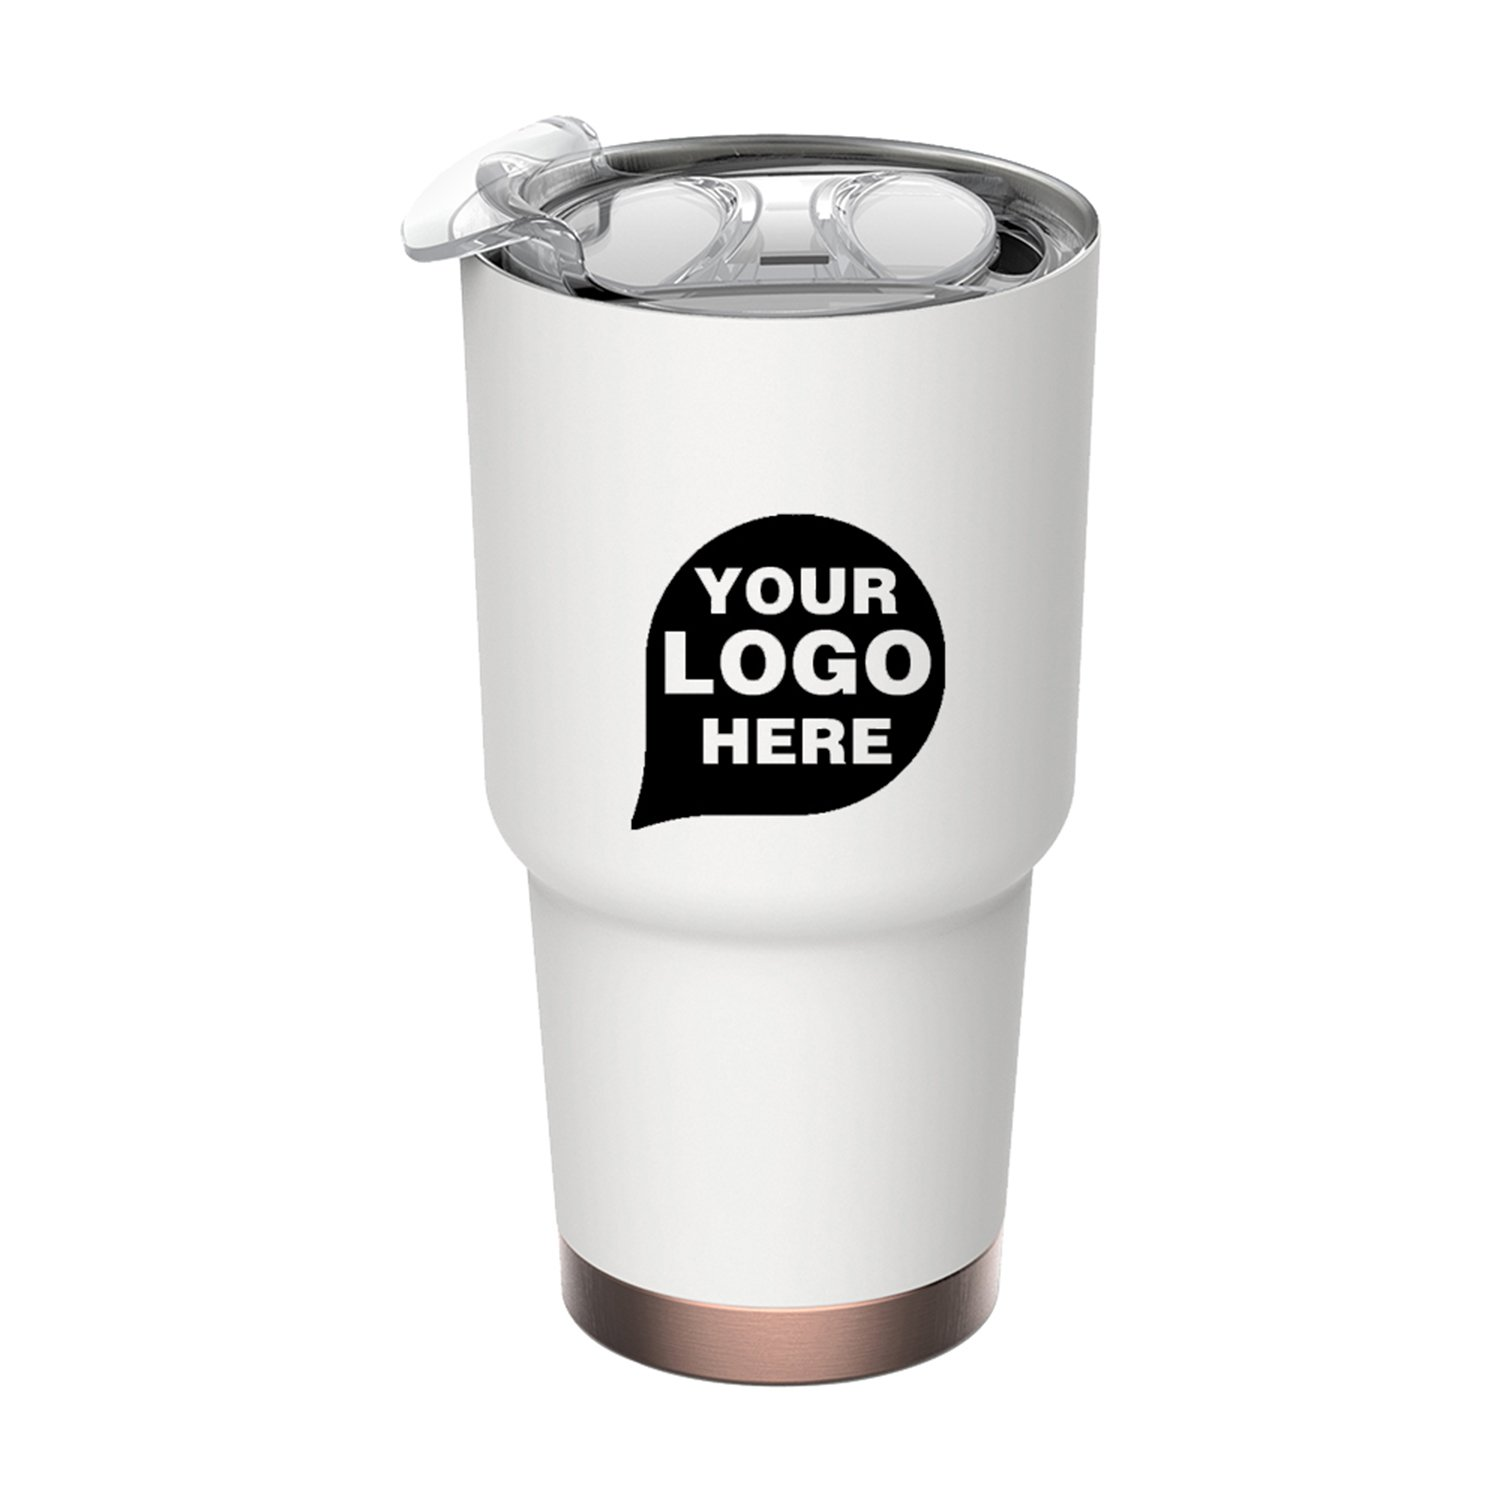 30 Oz/900 ml Hot And Cold / Double-walled Big Boss Travel Mug - 75 Quantity - $16.75 Each - PROMOTIONAL PRODUCT / BULK / BRANDED with YOUR LOGO / CUSTOMIZED